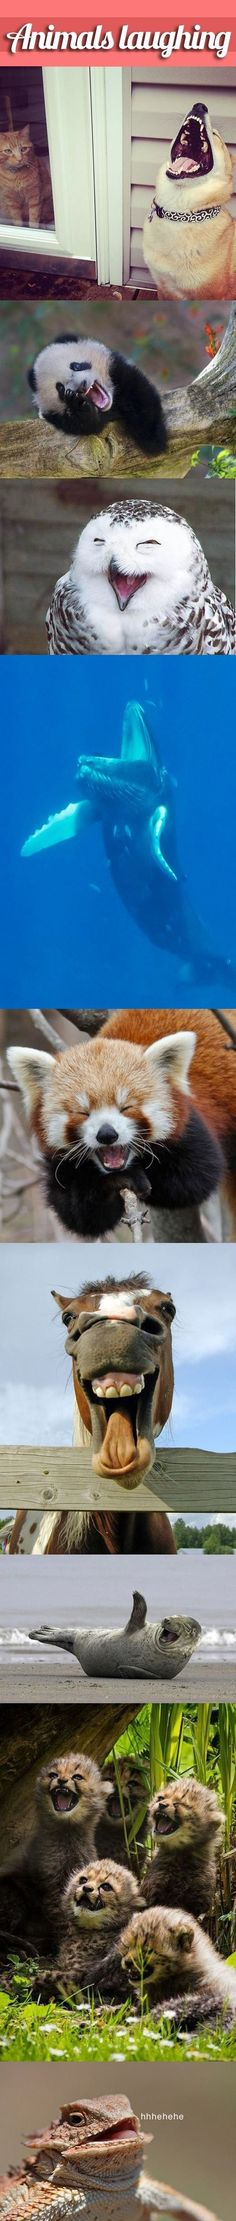 Laugh funny animal cute teen clothing adorable vintage OH MY GOSH forever blue raccoon woods clean humor I love to laugh